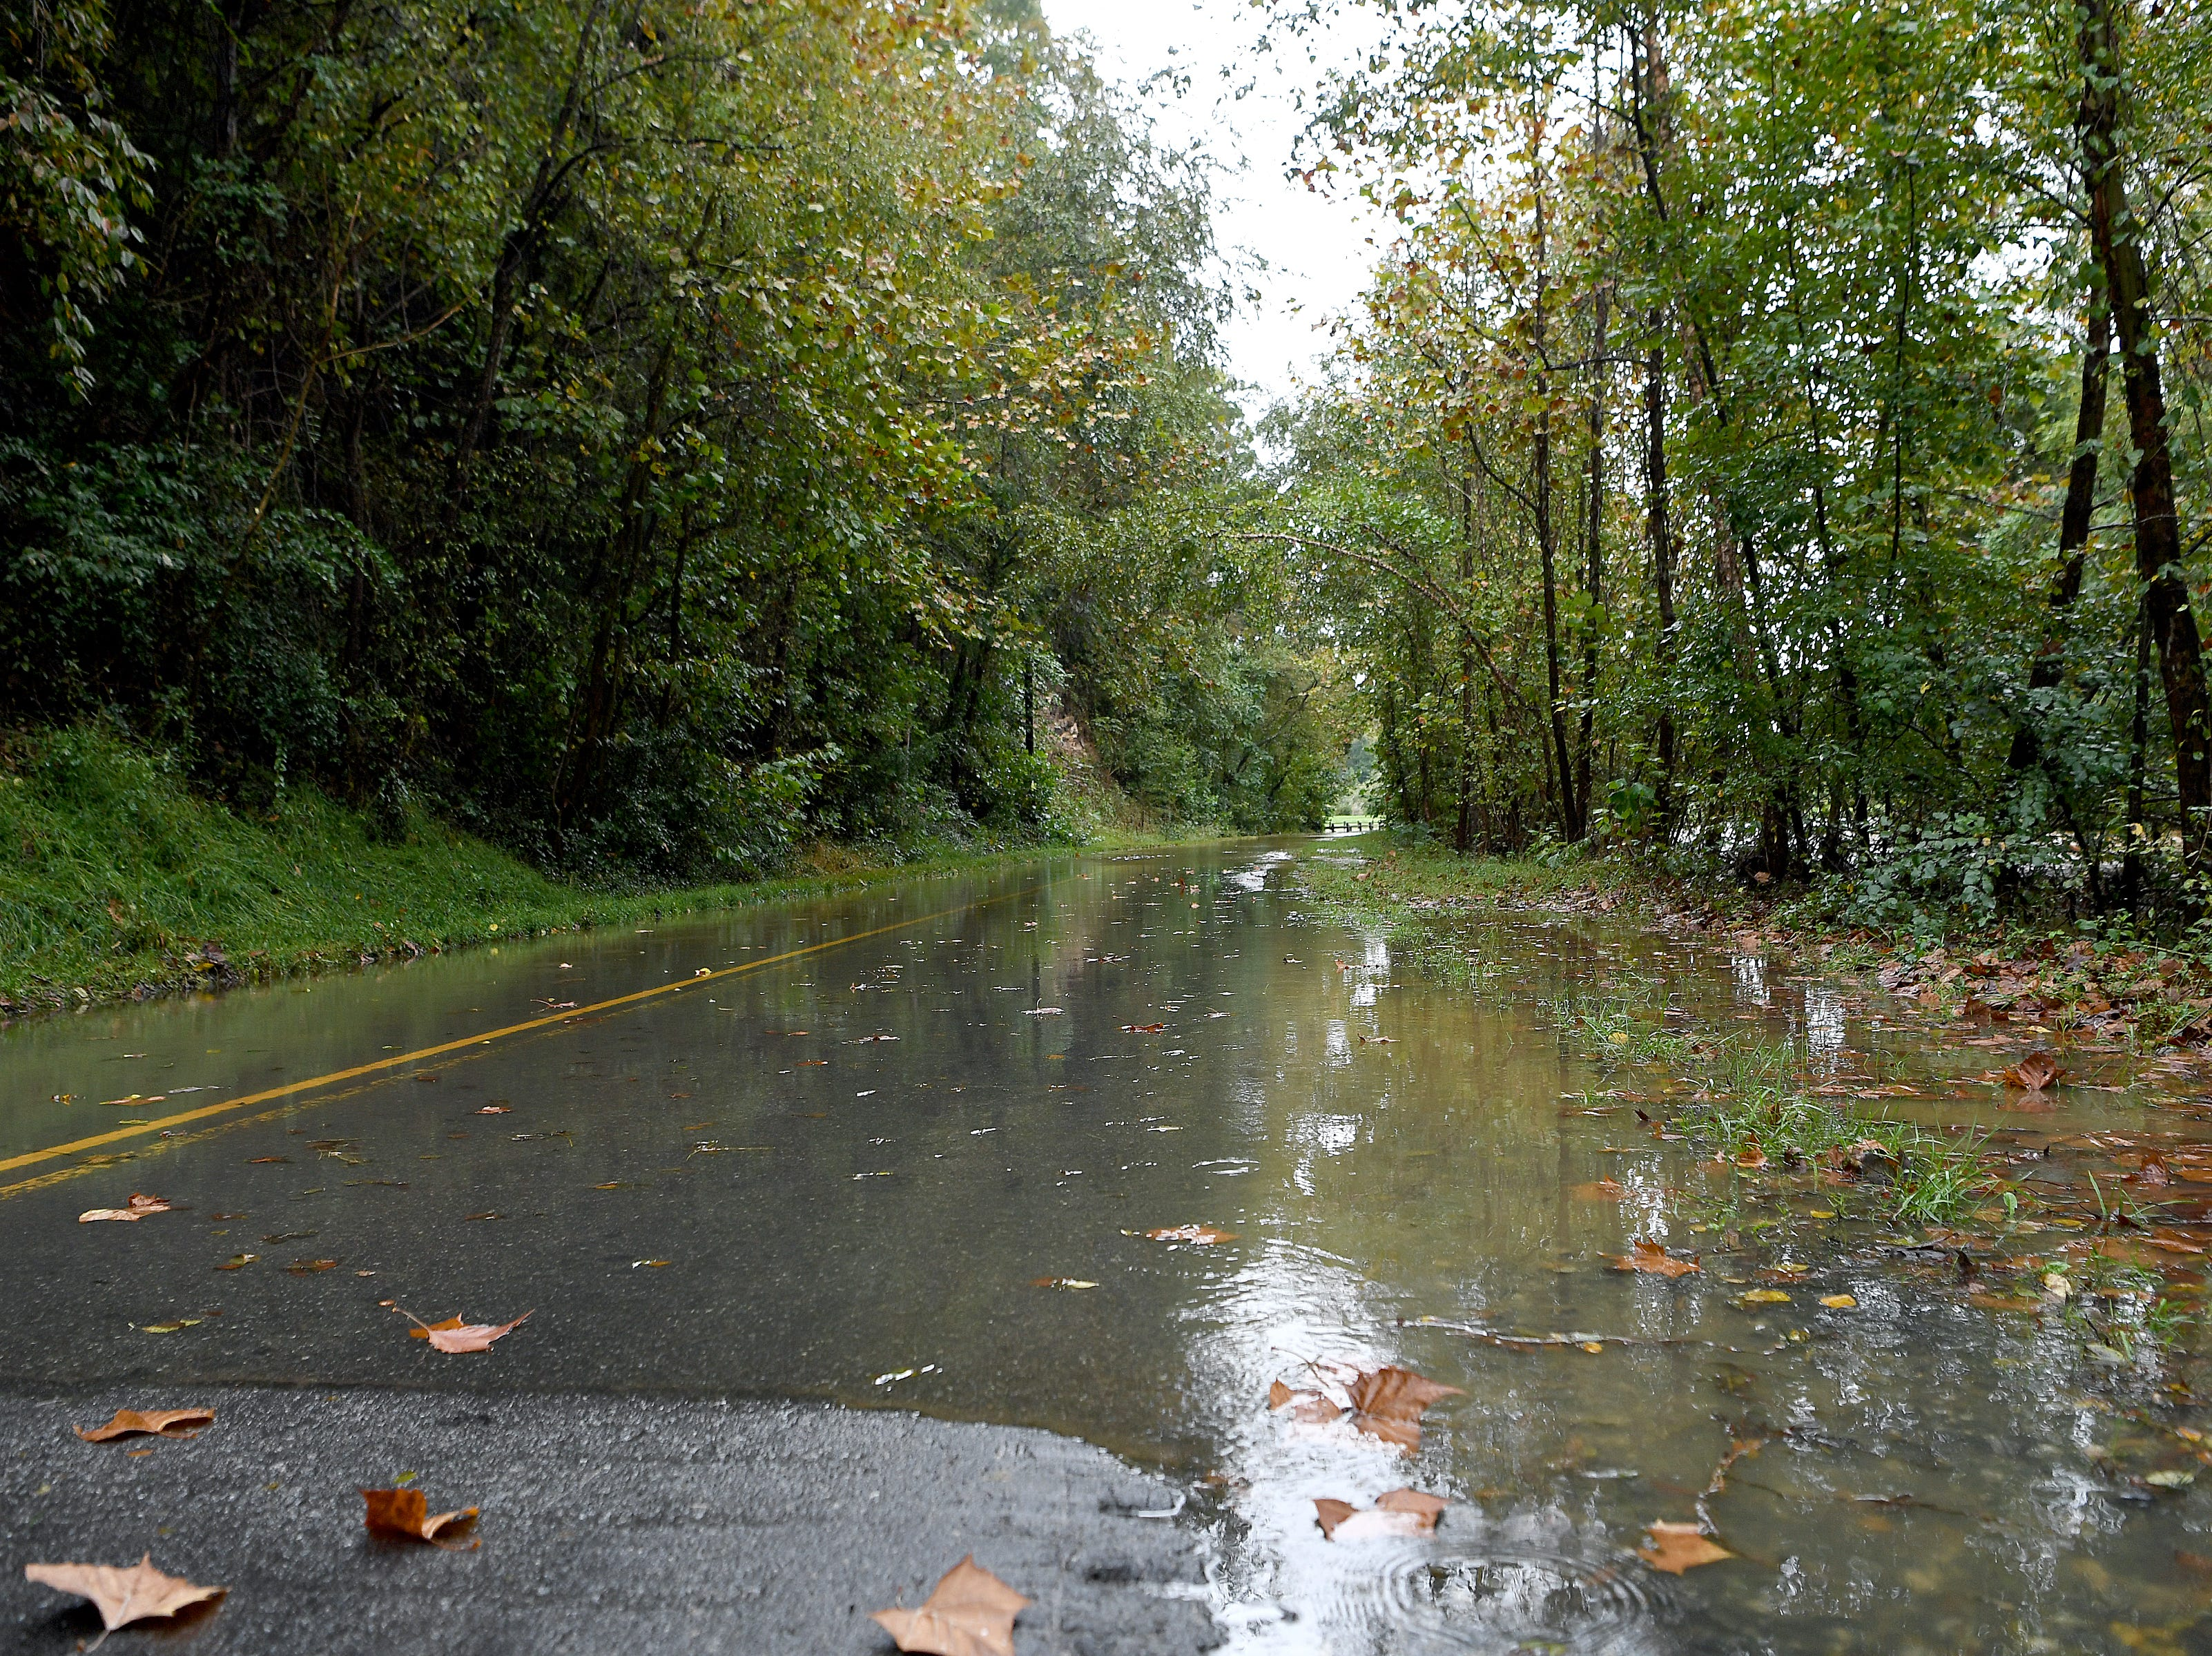 A portion of Azalea Road is closed as the Swannanoa River floods on Oct. 11, 2018.